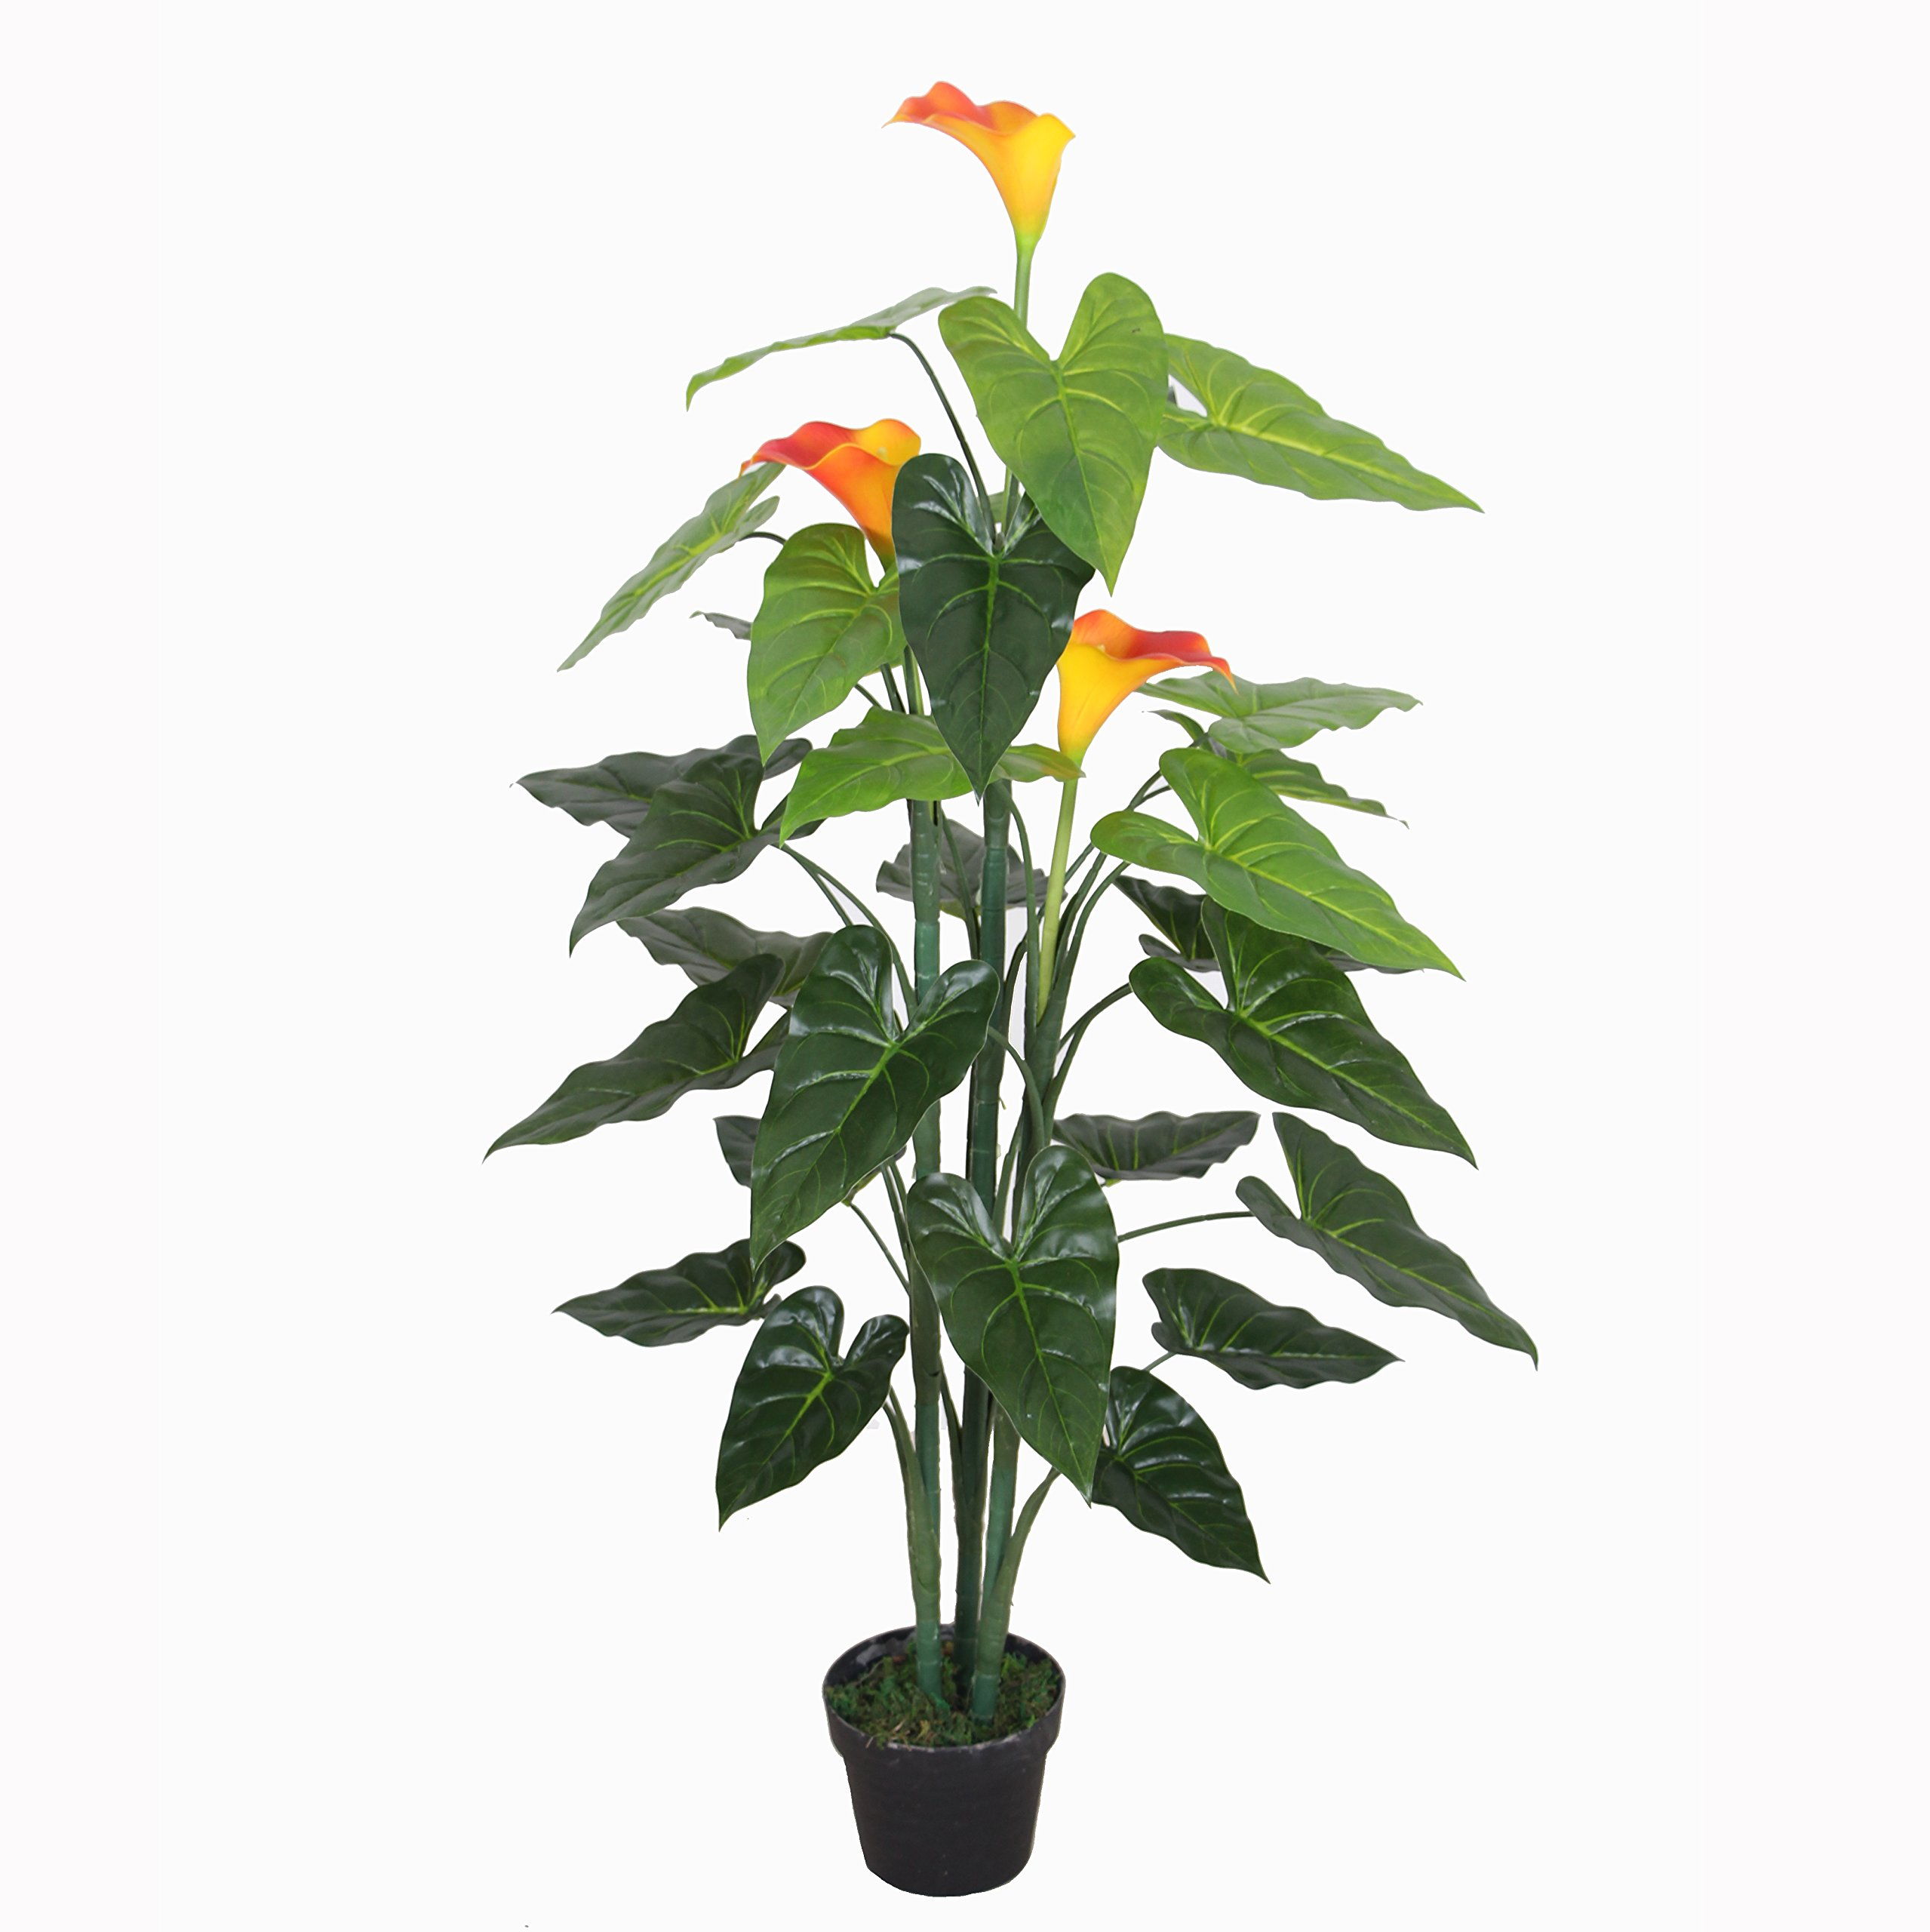 AMERIQUE 691322304060 Unique and Gorgeous Calla Lily Silk Flower Artificial Plant Tree Real Touch Technology, 4.2', Vivid Orange